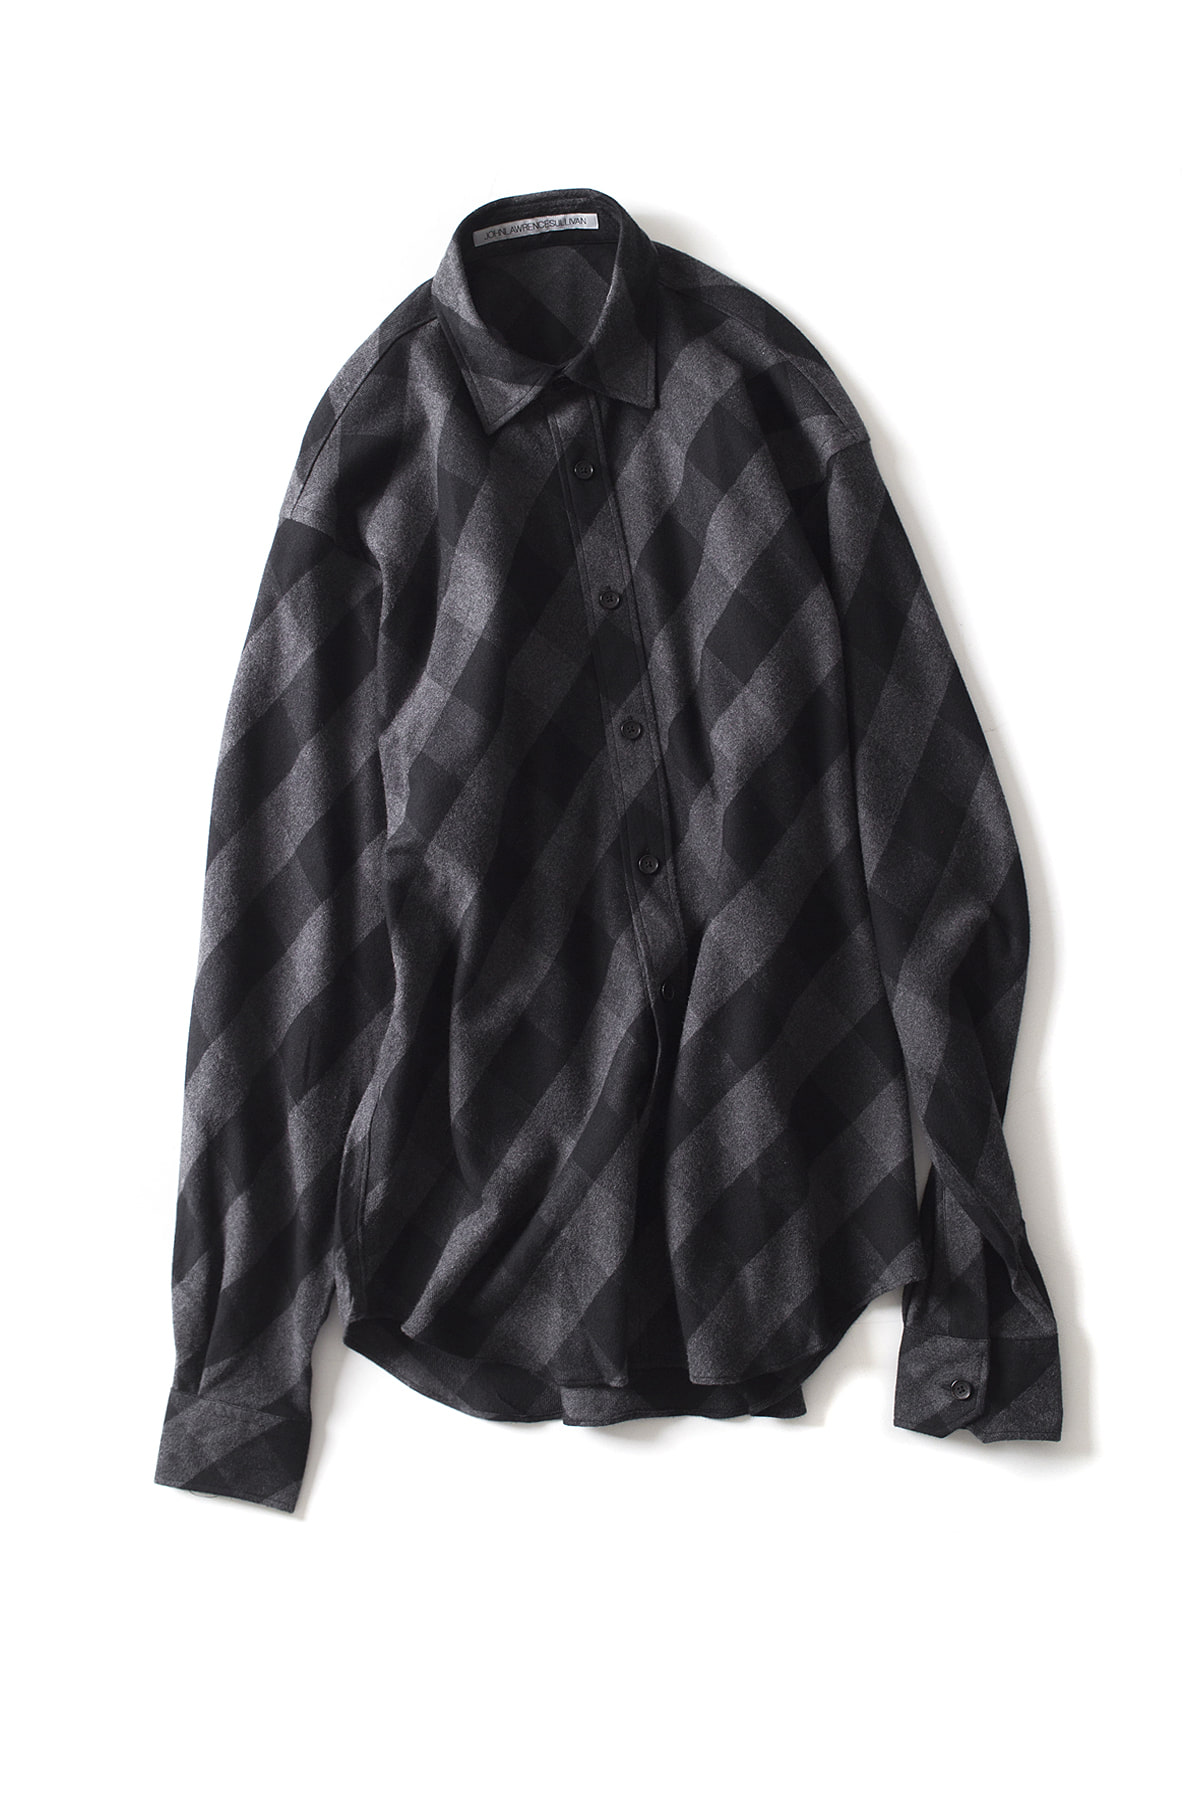 JOHN LAWRENCE SULLIVAN : Plaid Shirt (Black)